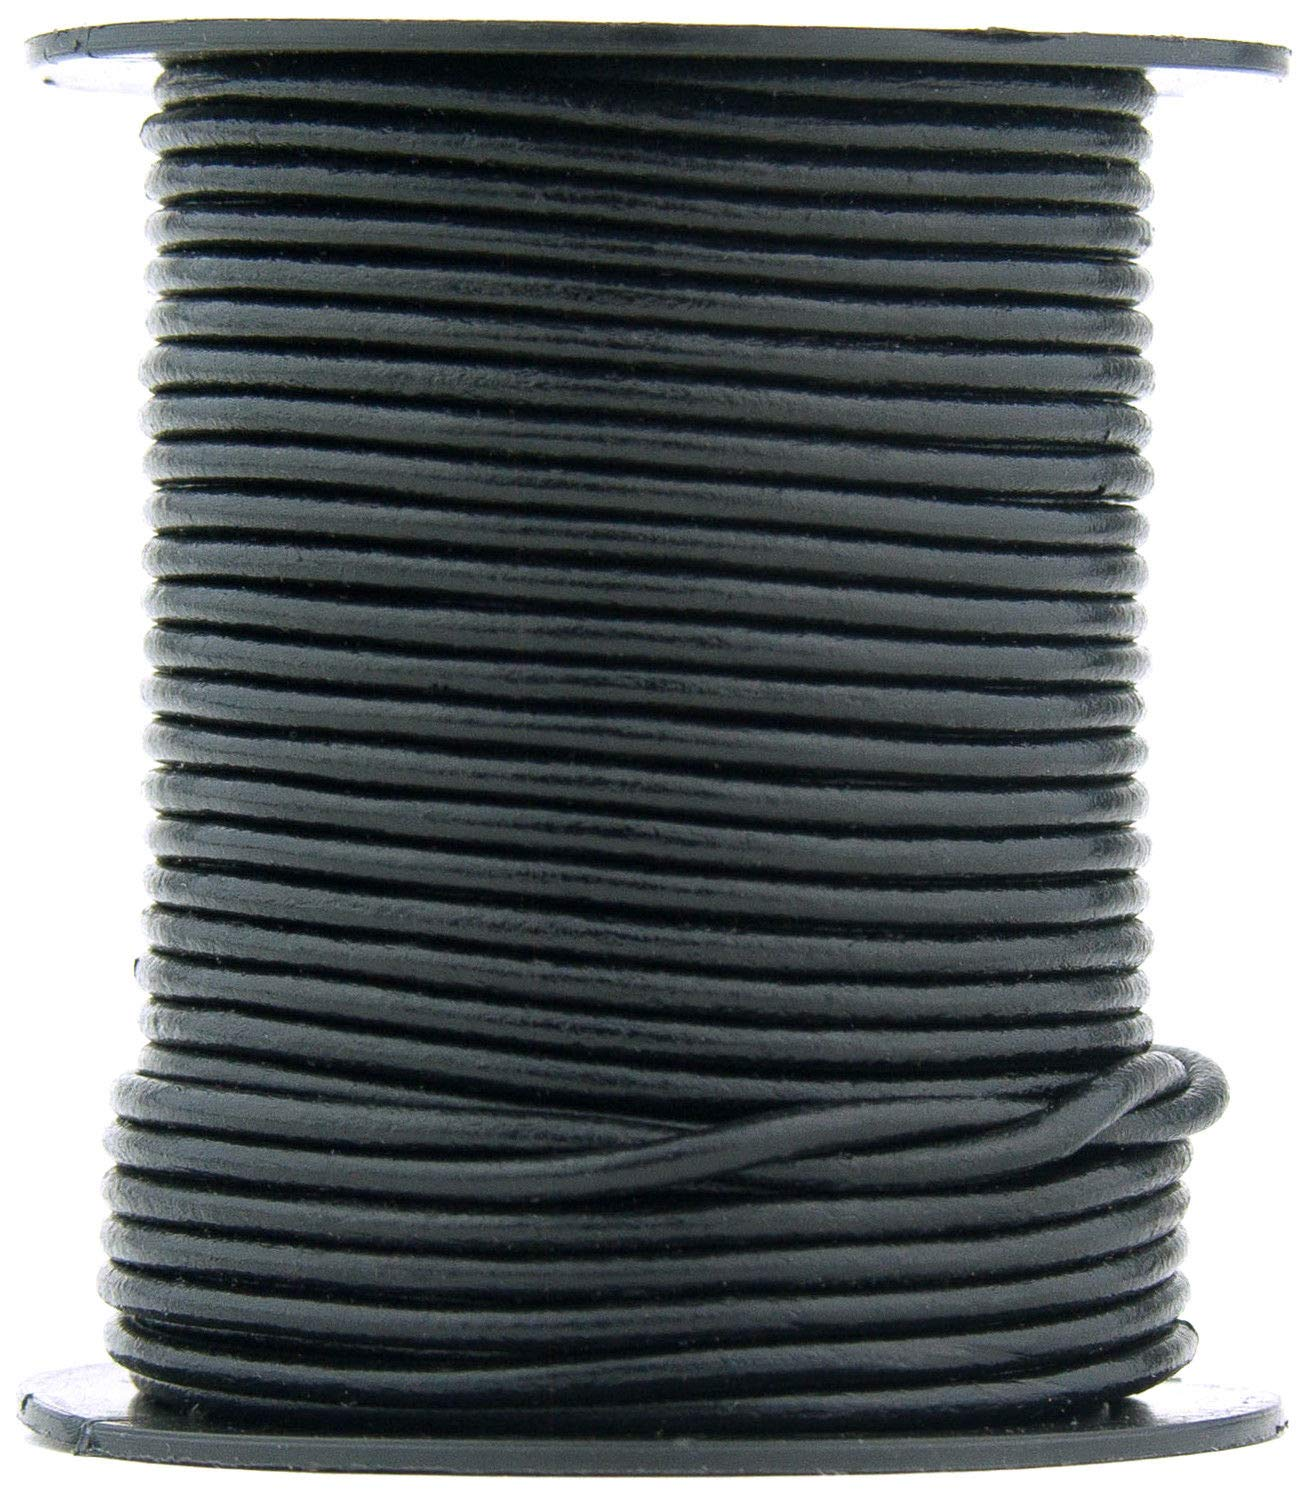 Black Round Leather Cord 1.5mm 25 Meters (27.34 Yards)